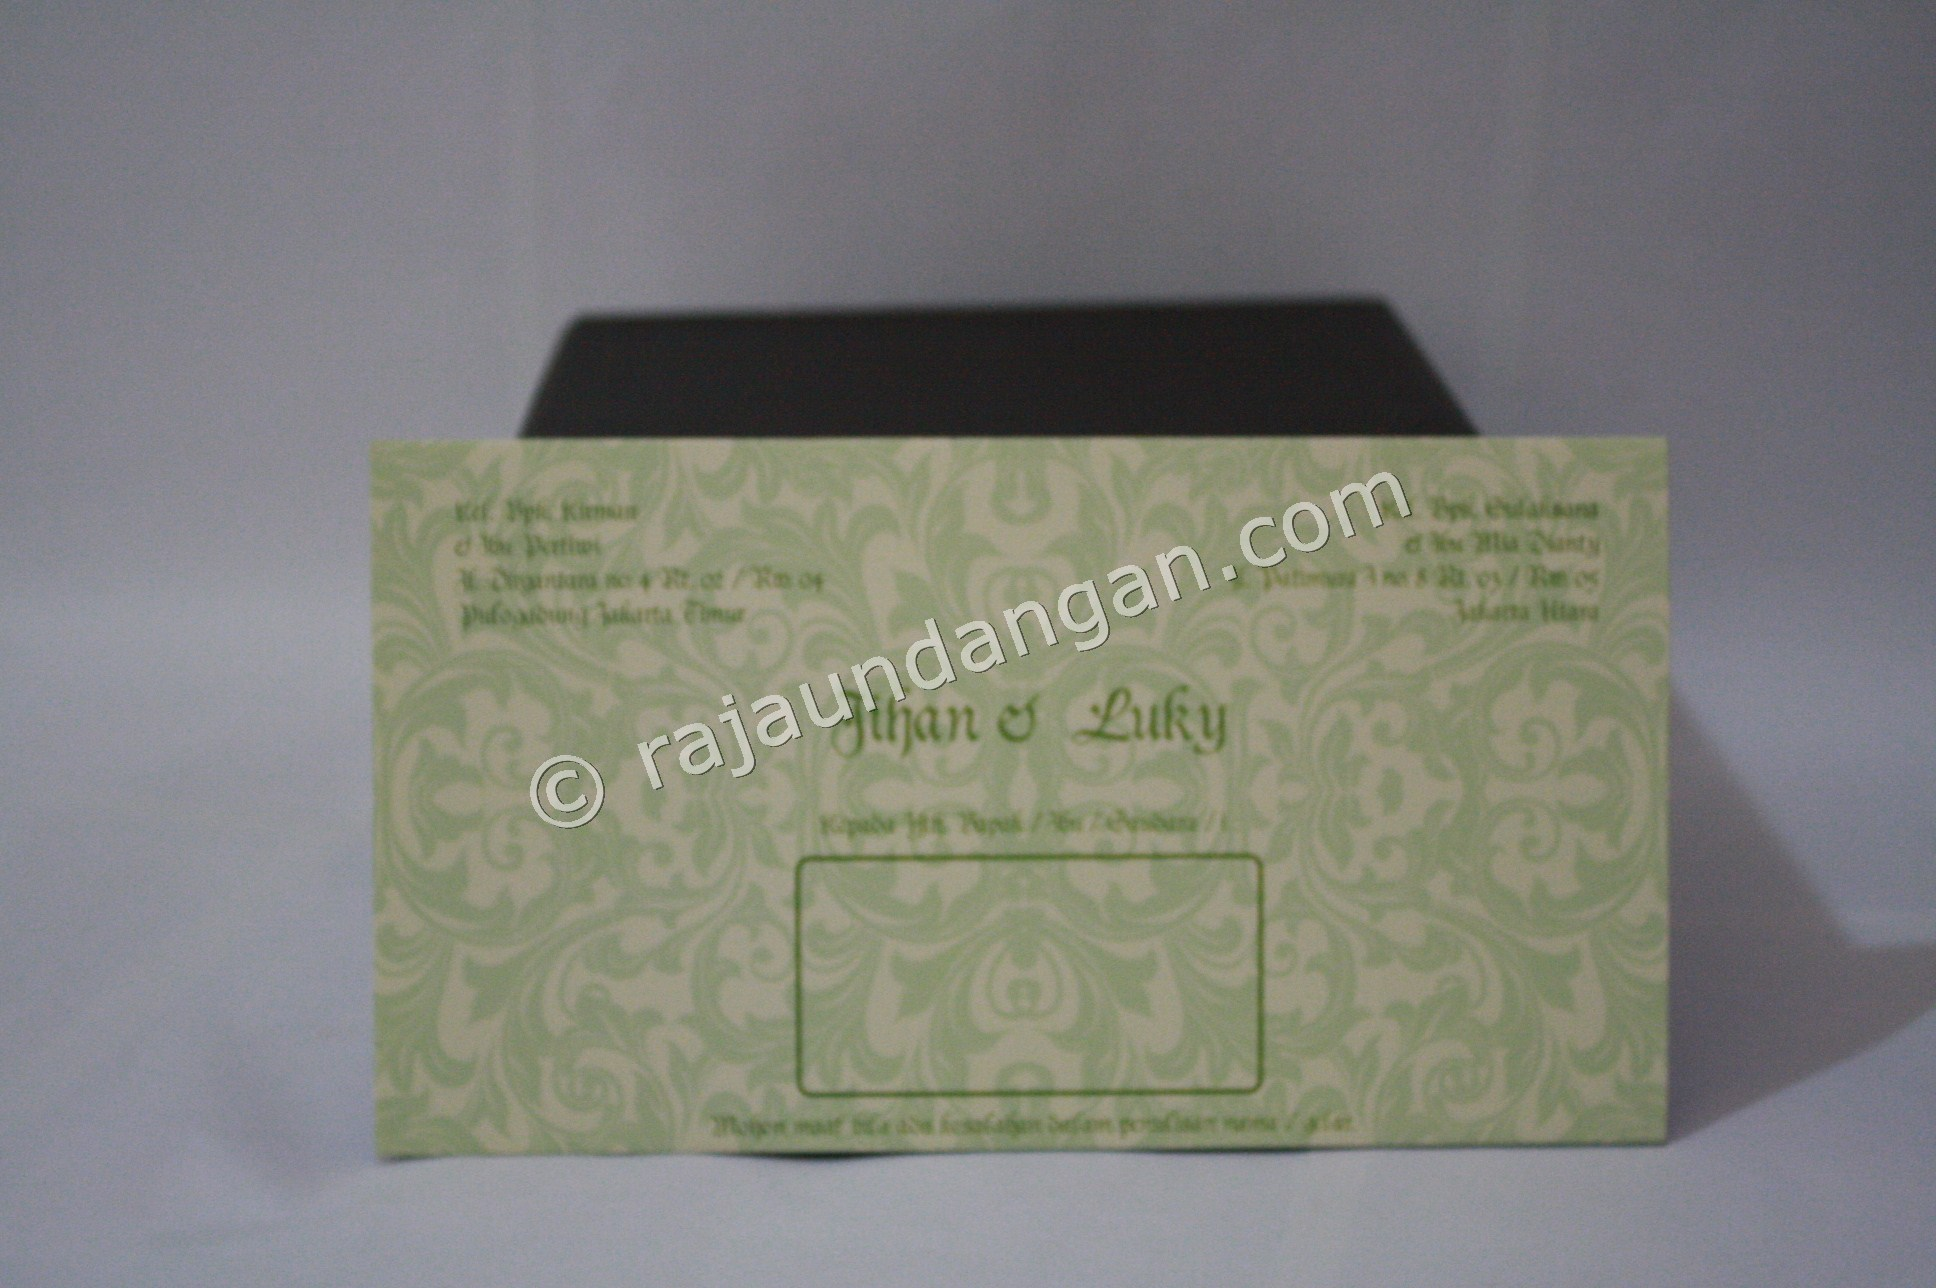 Undangan Pernikahan Softcover Jihan dan Luky 2 - Membuat Wedding Invitations Unik dan Simple di Sawahan